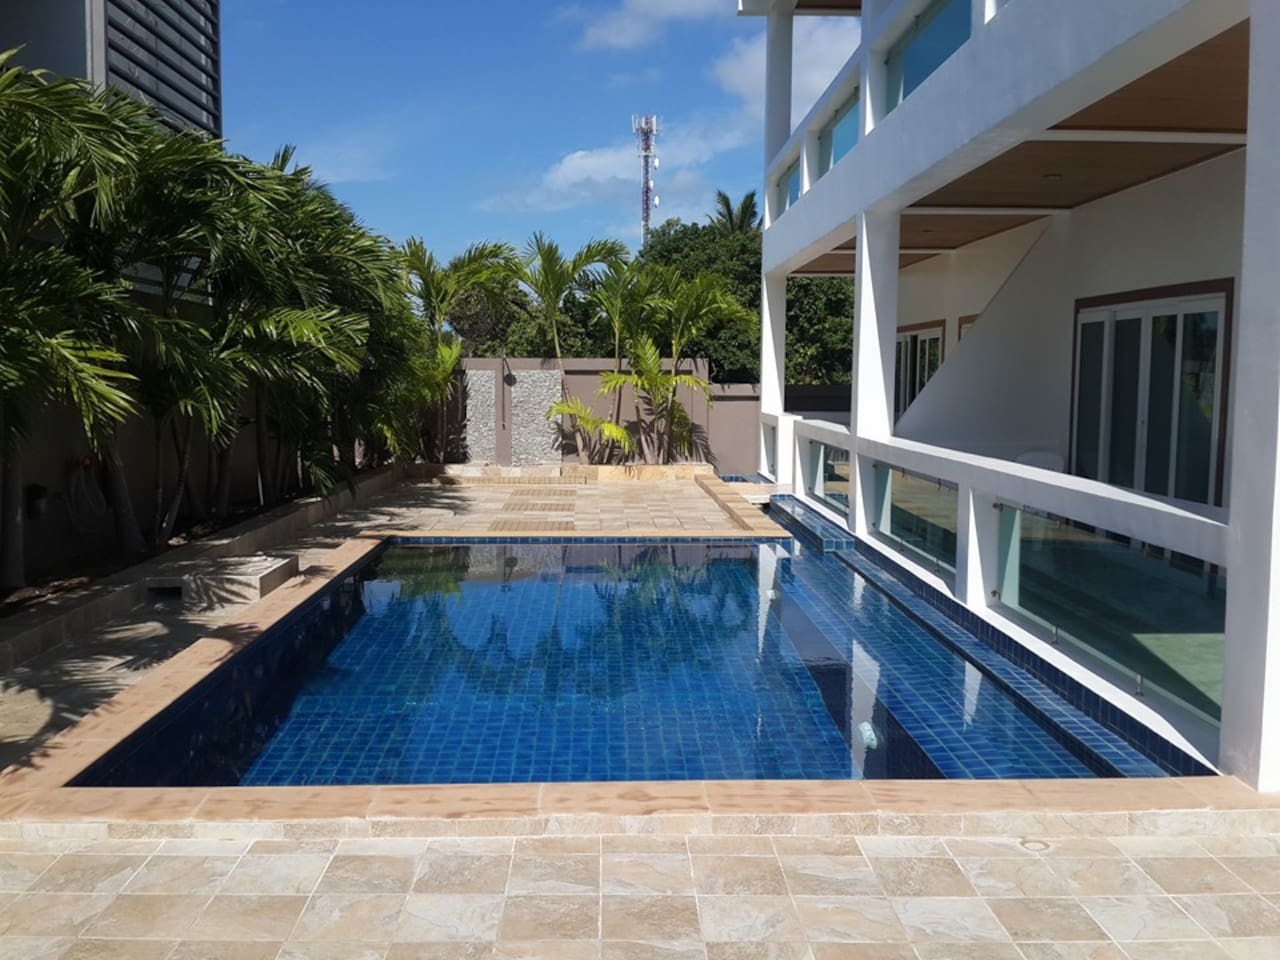 This is the communal pool but with very little use so yours almost exclusively.